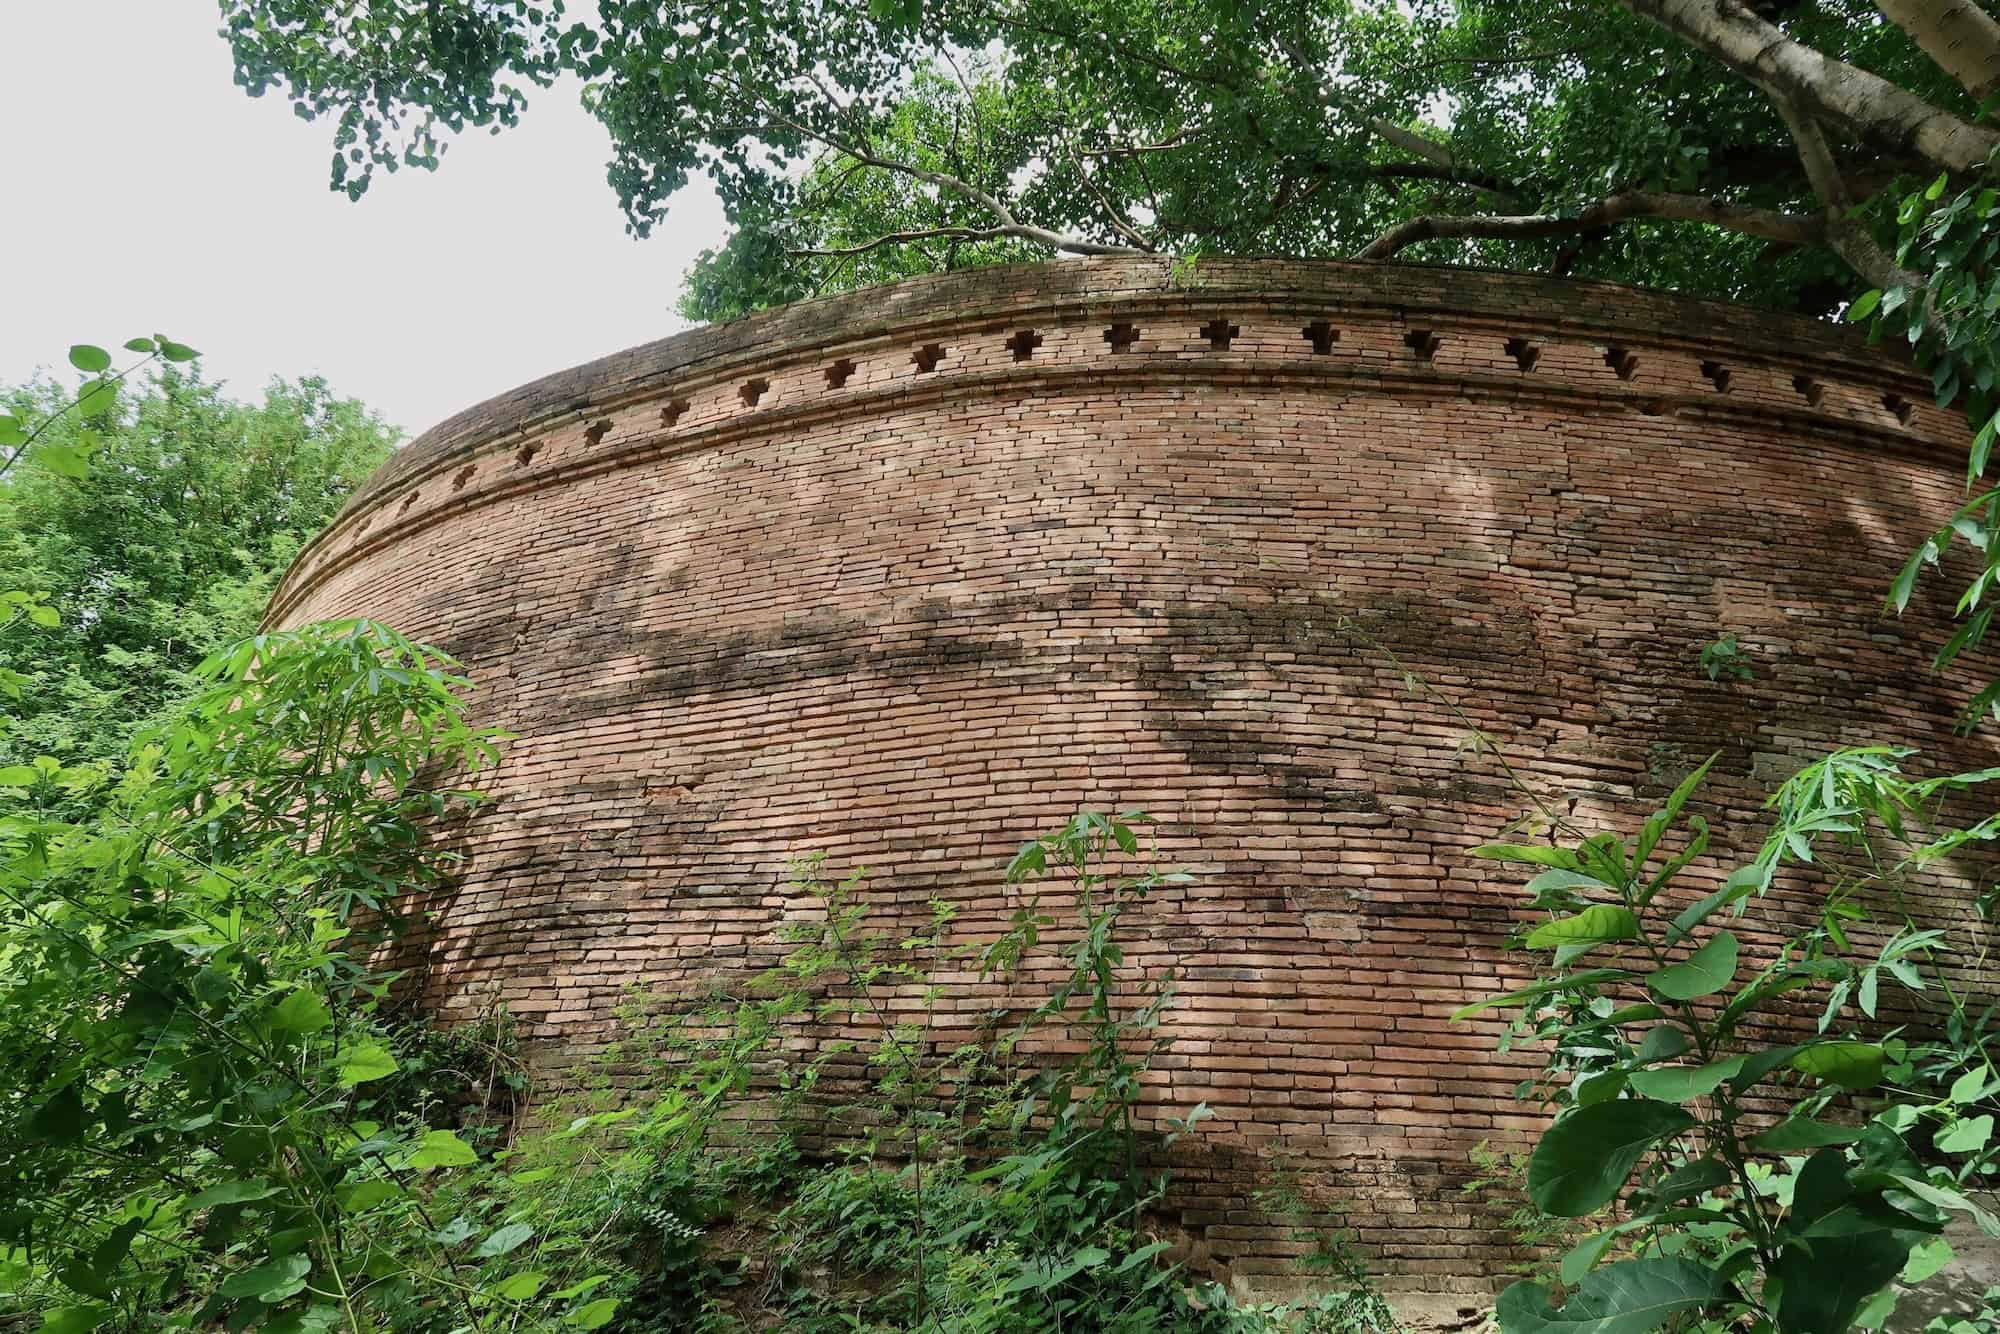 Ancient Chiang Mai: 11 Hidden Ruins of Historic Lanna